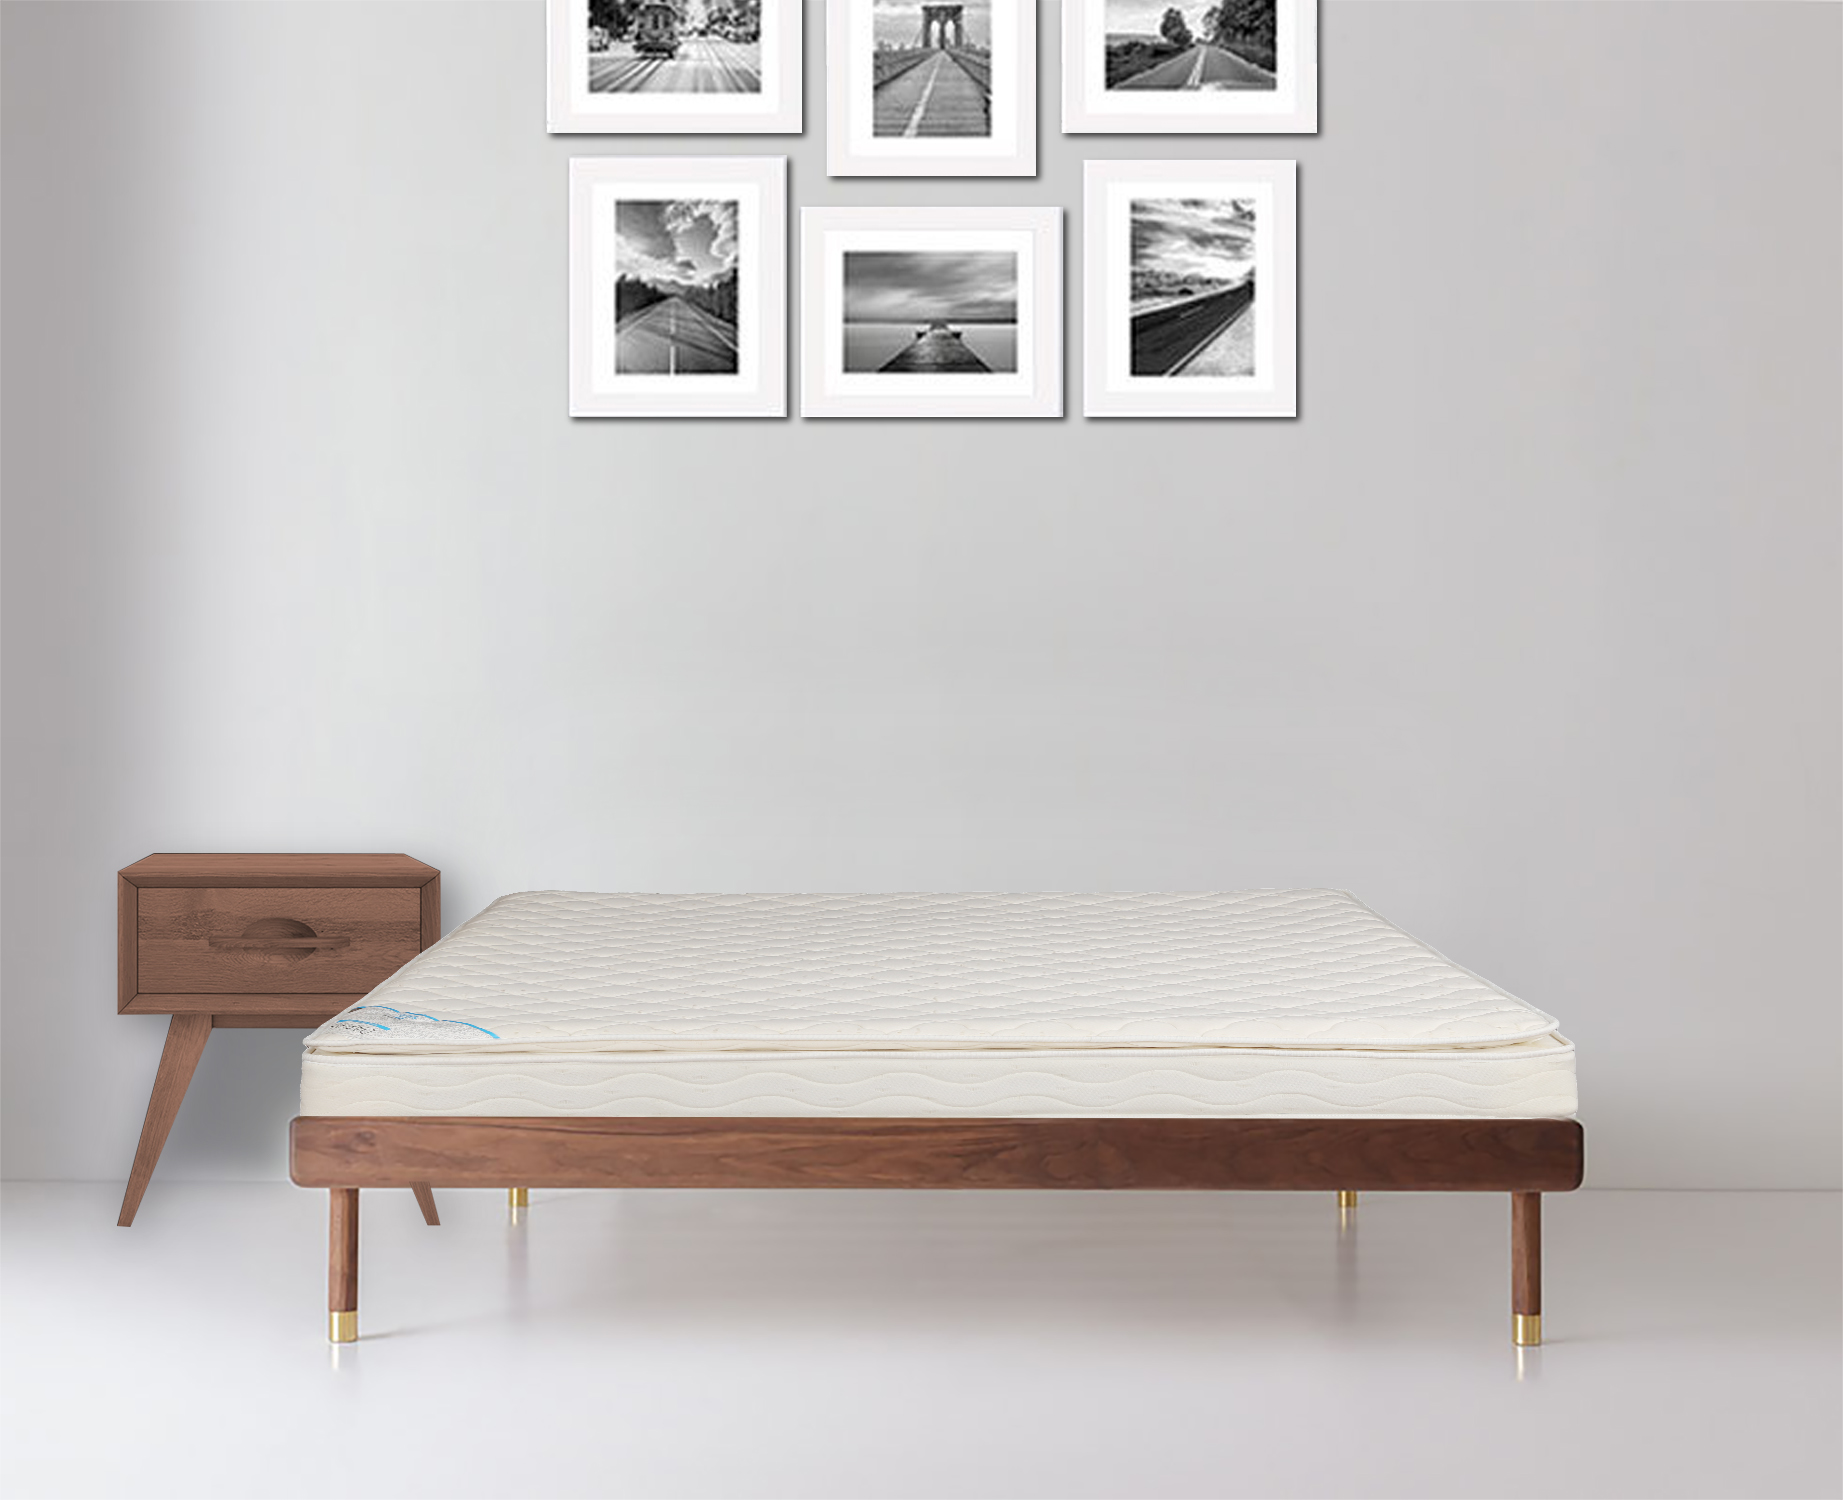 Daphne Bonnell Pillow Top King Bed Mattress (78*72*6) in Off White Colour by HomeTown